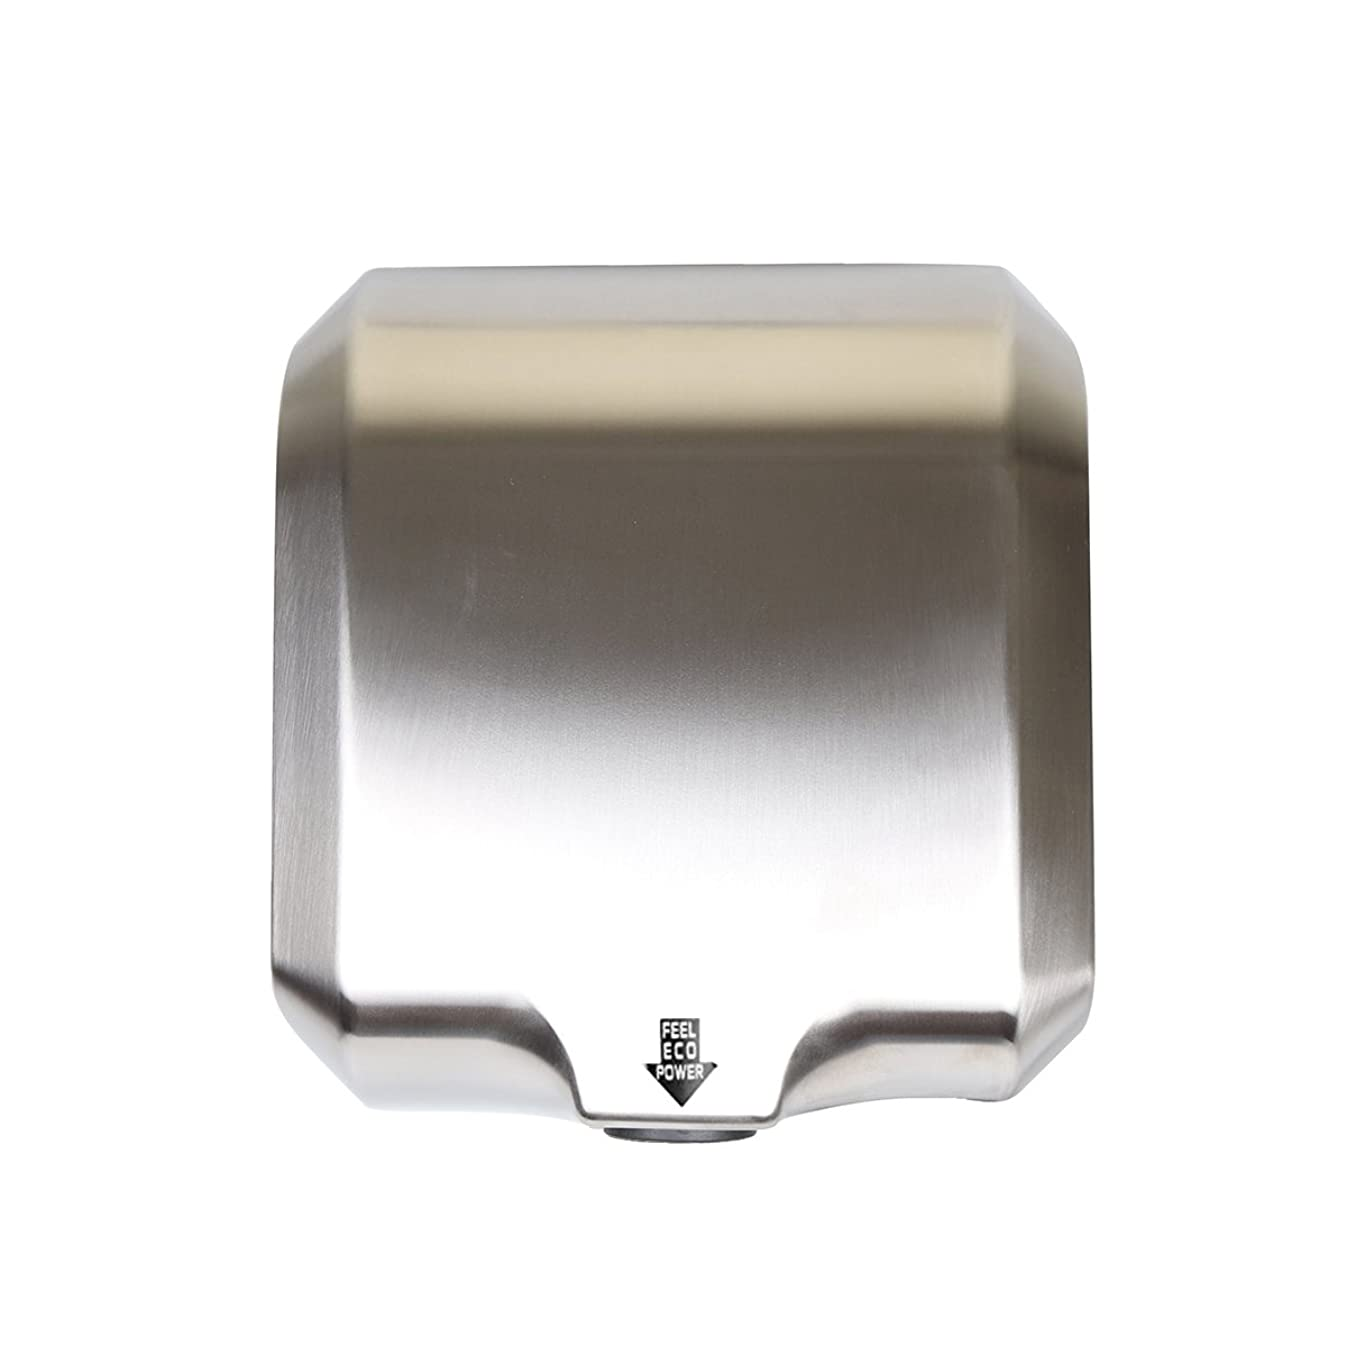 Goetland Stainless Steel Commercial Hand Dryer 1800w Automatic High Speed Heavy Duty Dull Polished